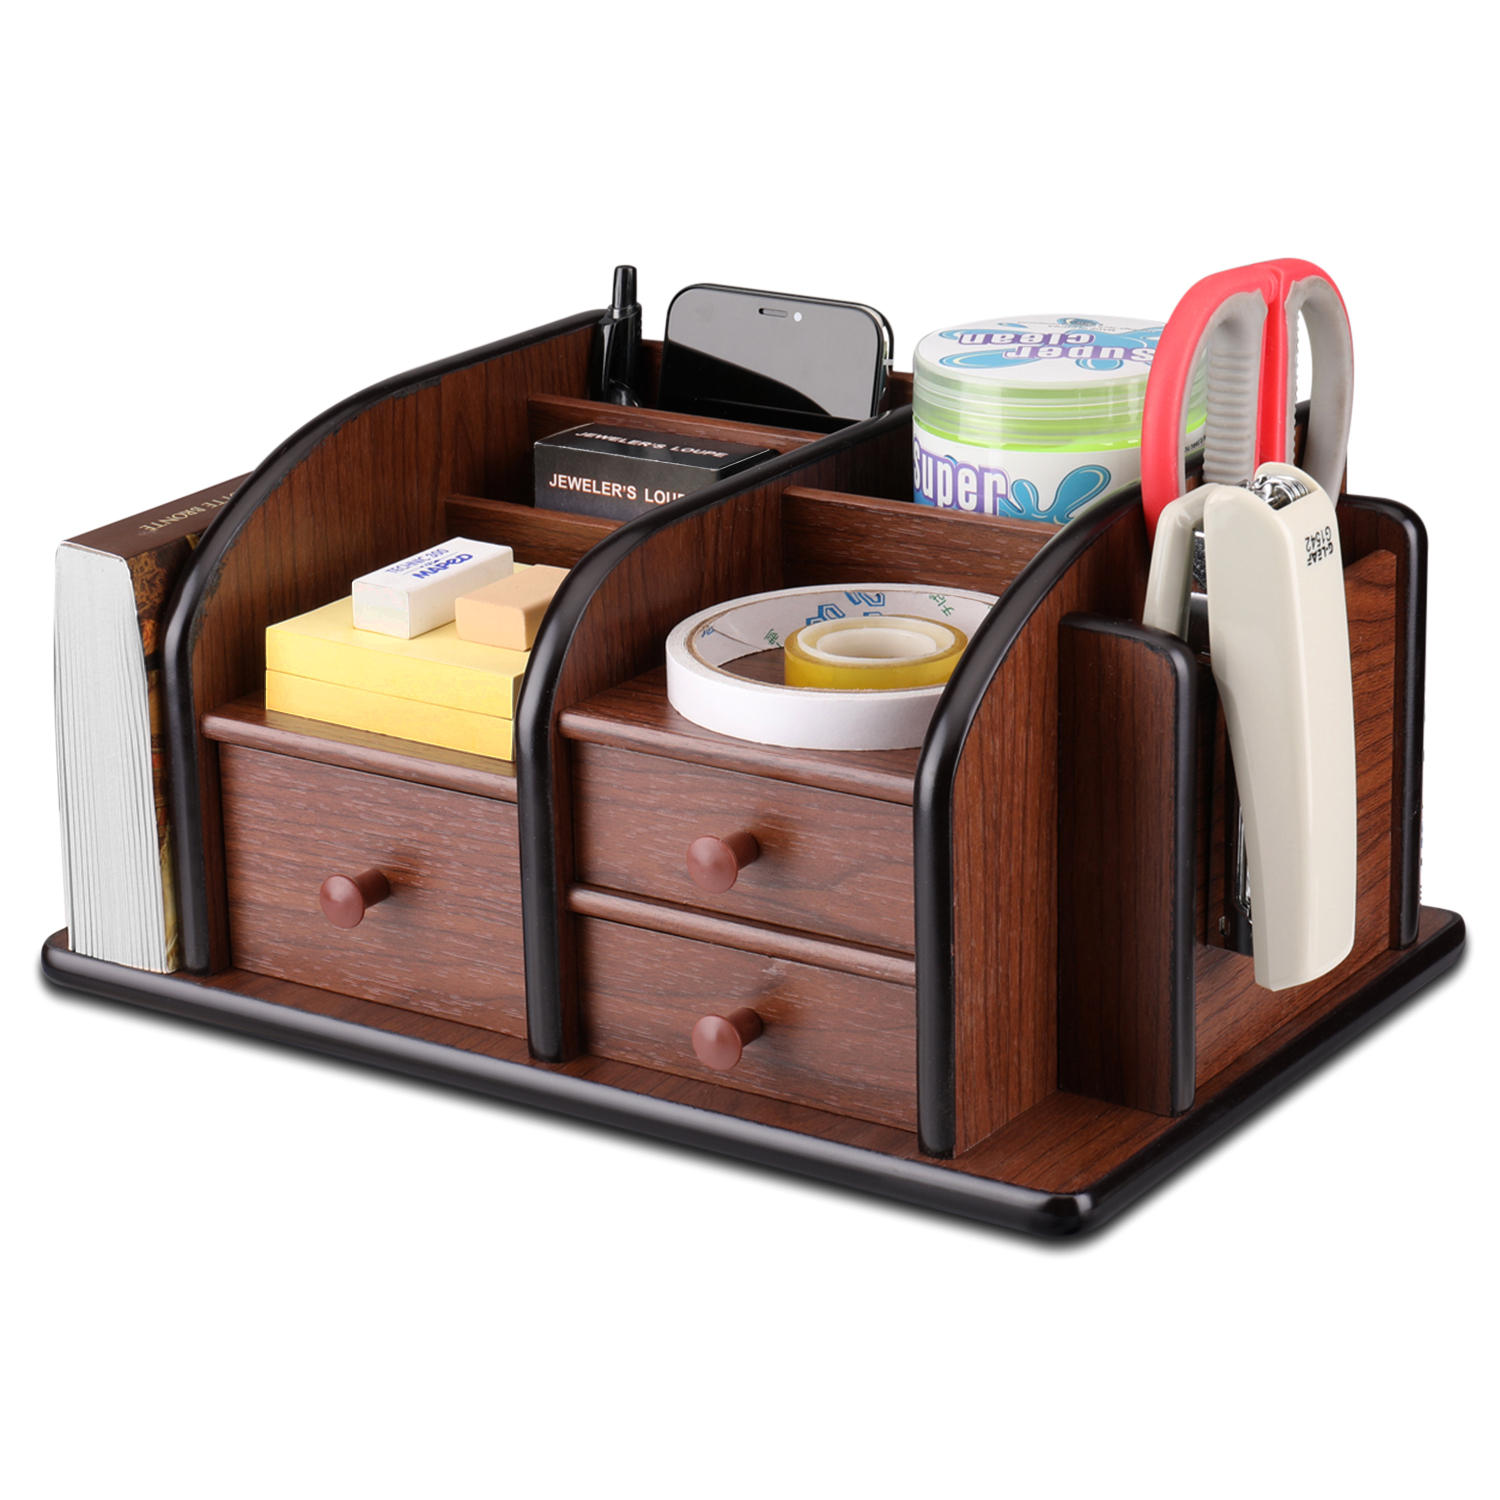 Wooden Desk Organizer w/ Drawers - Classic Wood Office Supplies Accessories Desktop Tabletop Sorter Shelf Rack Cherry Brown Pencil Holder Caddy Set with 3 Drawers, 3 Compartments & 2 Shelves